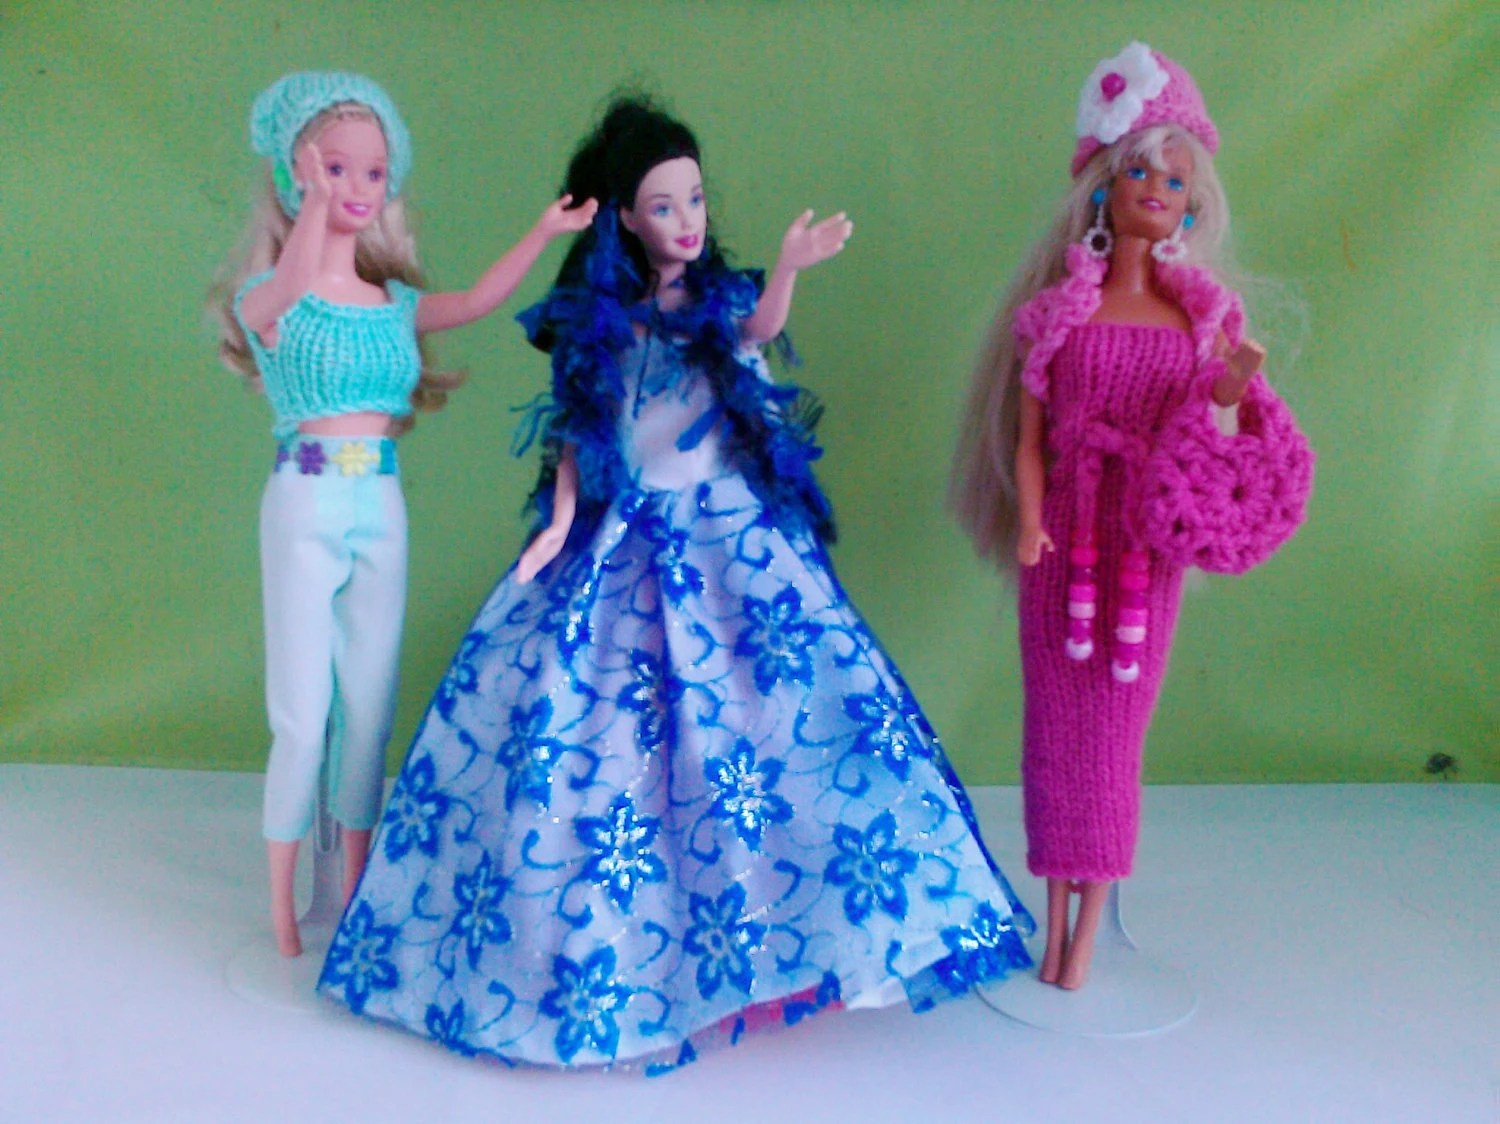 New handmade multi set - barbie/sindy dolls clothes  3 items in Multi Set Pack (10 items)           M 722   738     756    X    43